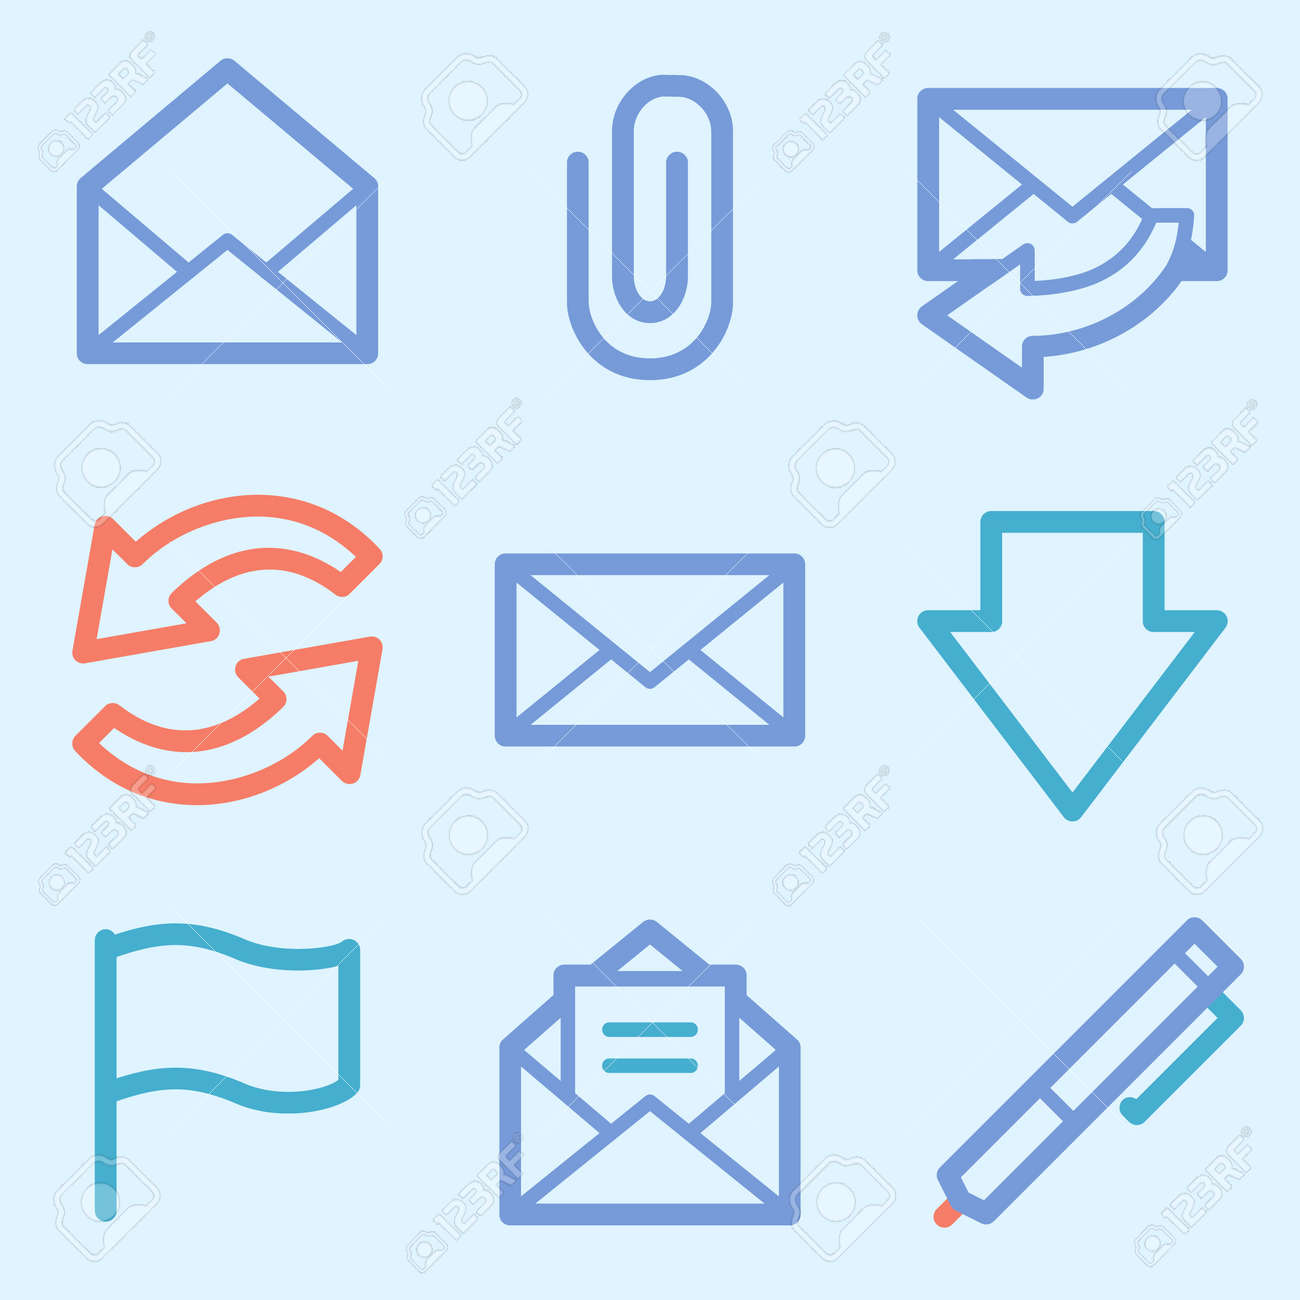 Saints symbols and signs image collections symbol and sign ideas crm stock symbol choice image symbol and sign ideas e mail and documents web icons set biocorpaavc